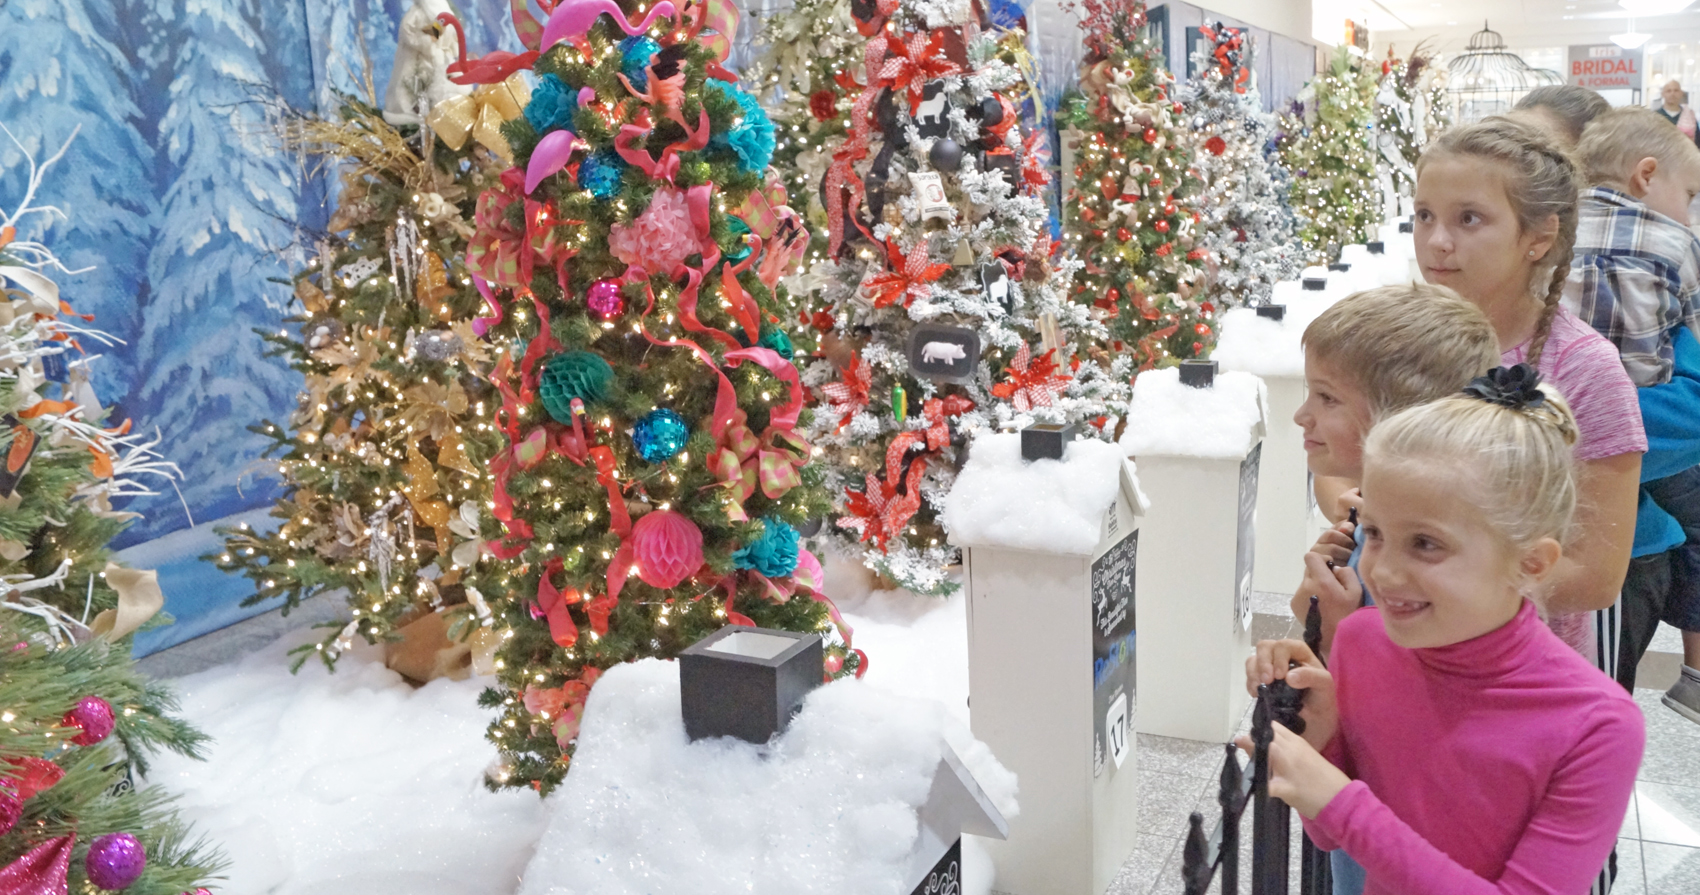 10th annual Christmas Tree Lane is open at Promenade Temecula — HABITAT FOR HUMANITY INLAND VALLEY